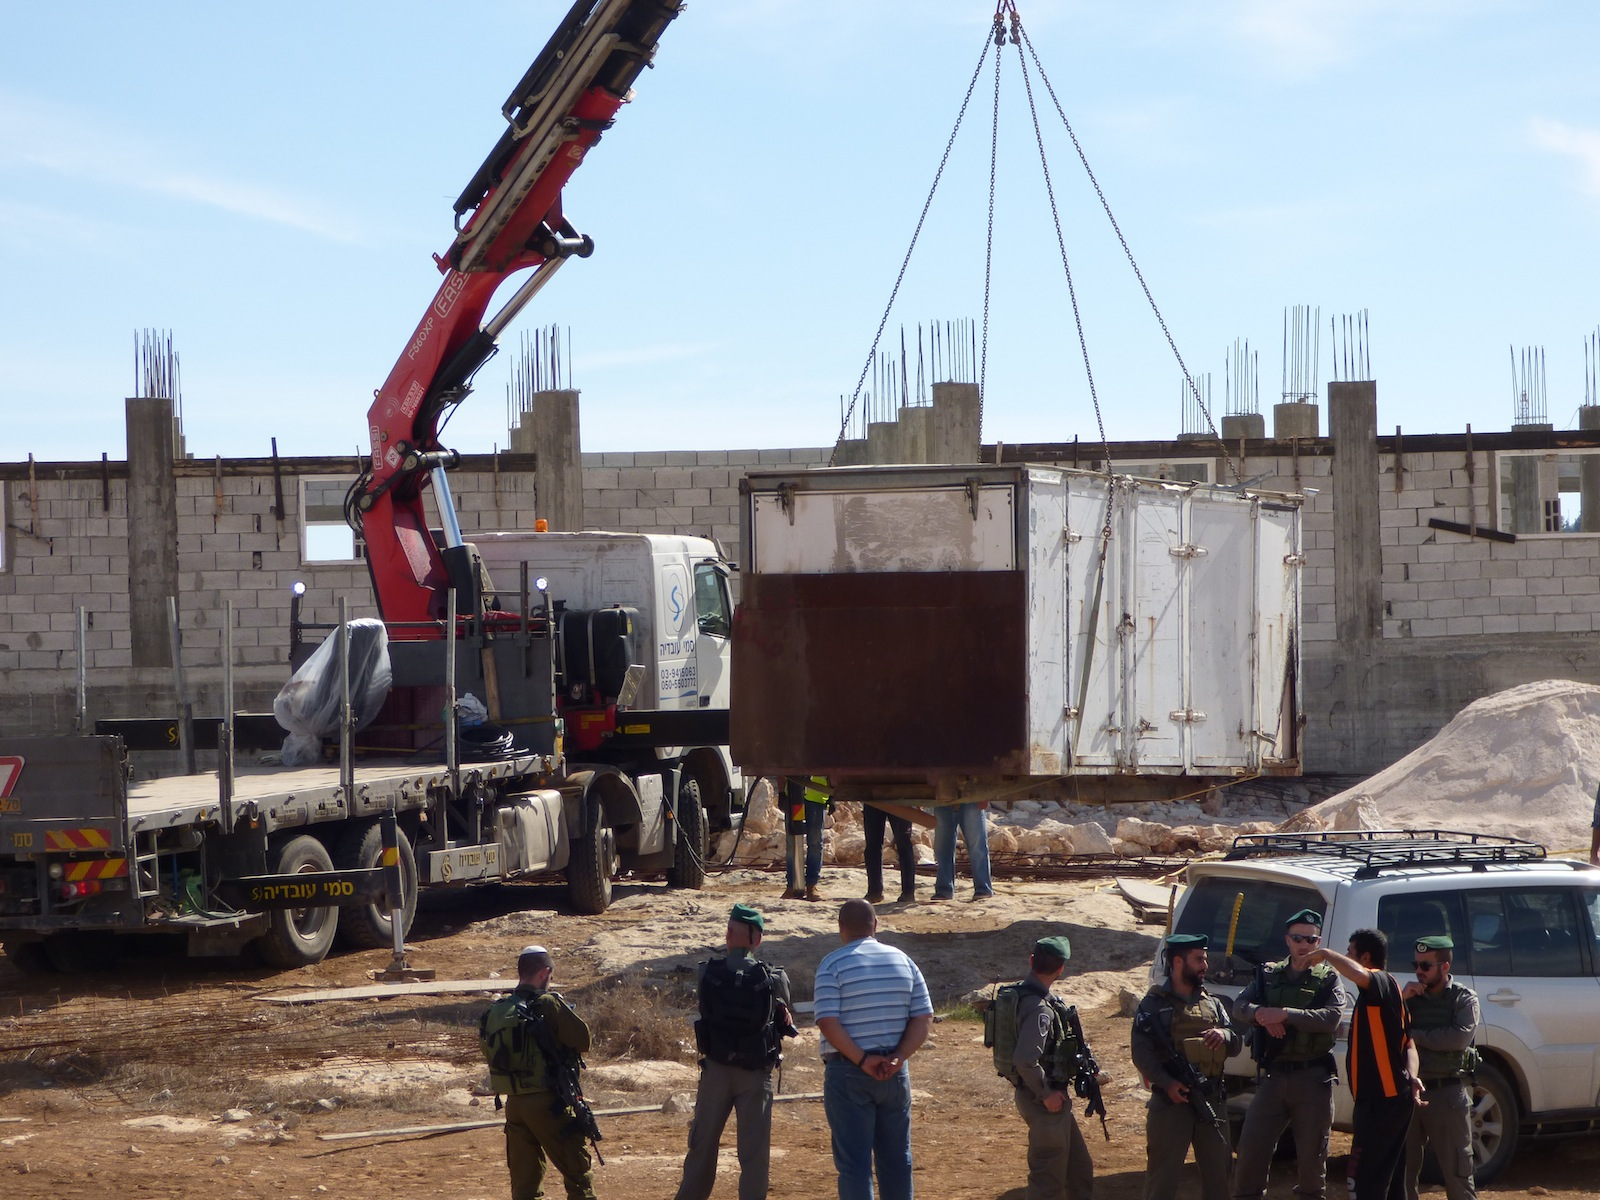 Israeli forces confiscate a container full of building materials